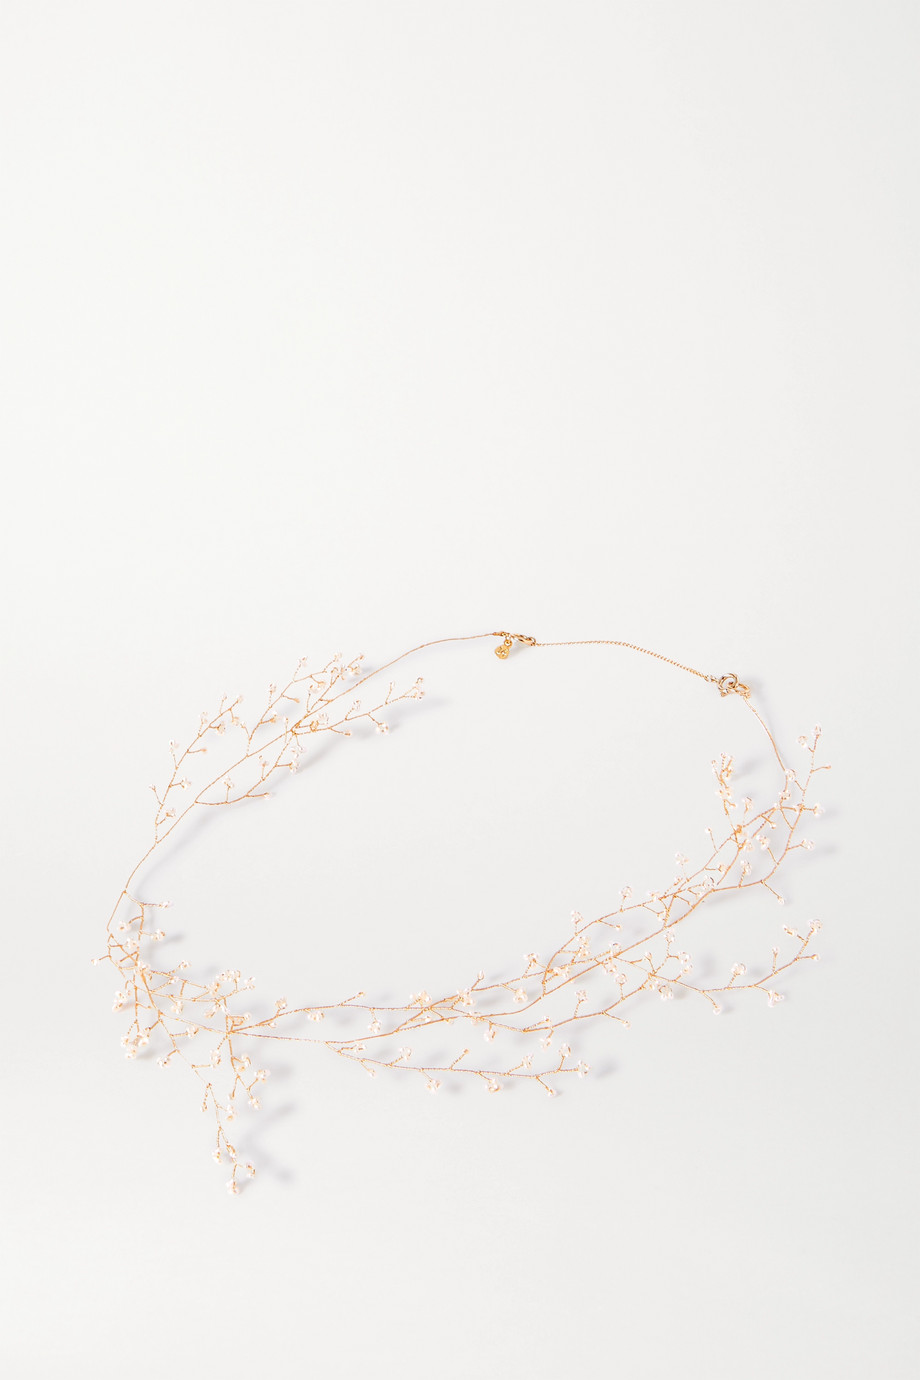 14 / Quatorze Baby's Breath gold-plated pearl necklace